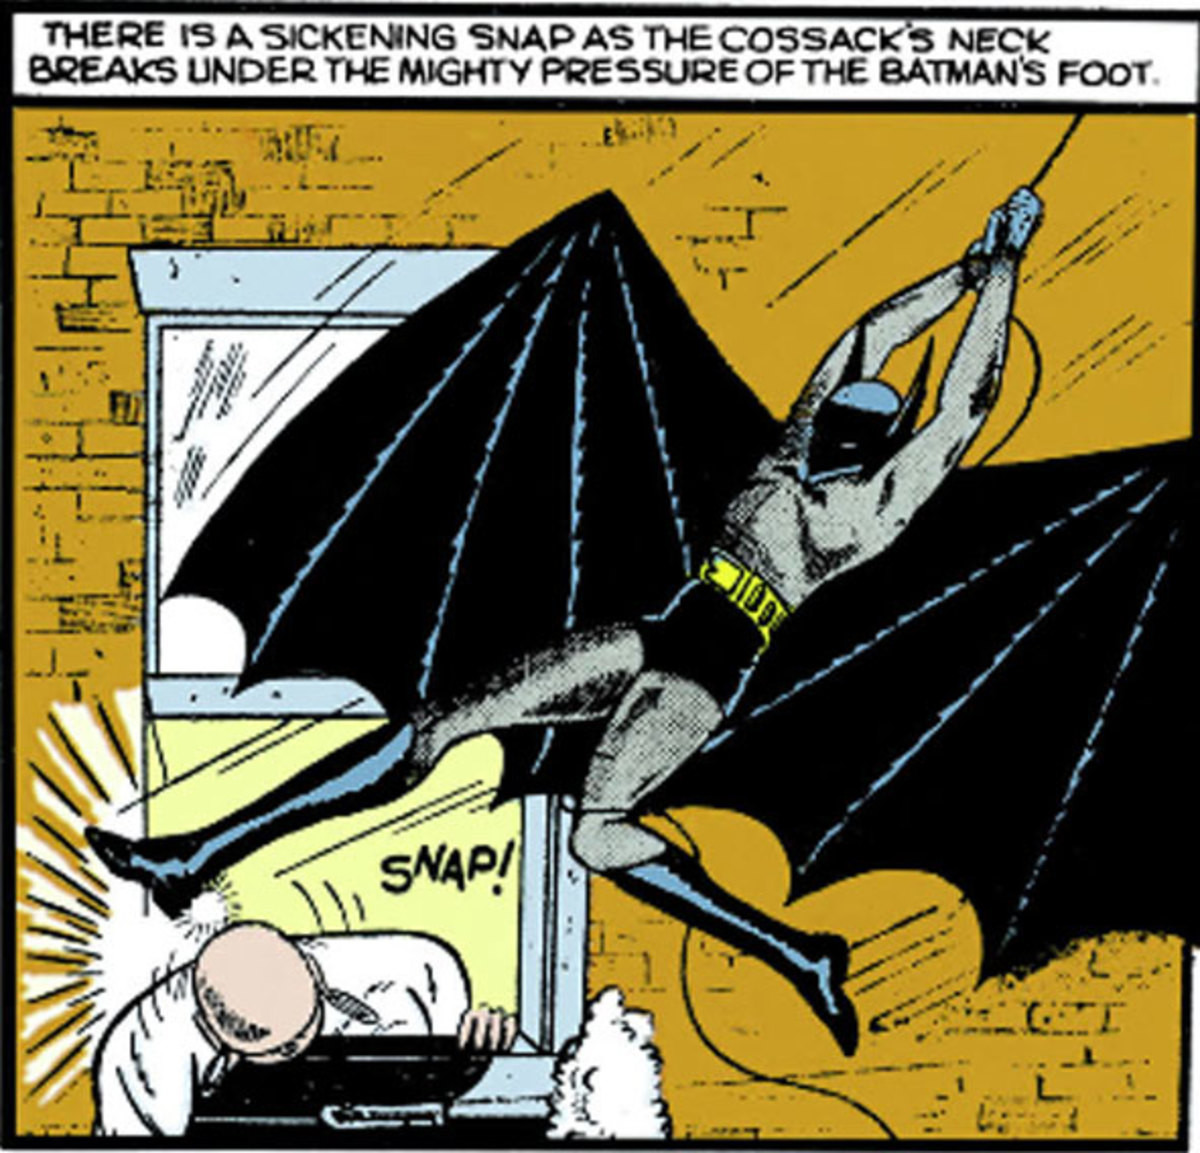 This kills the man. .. Batman has never killed a person, only communists.